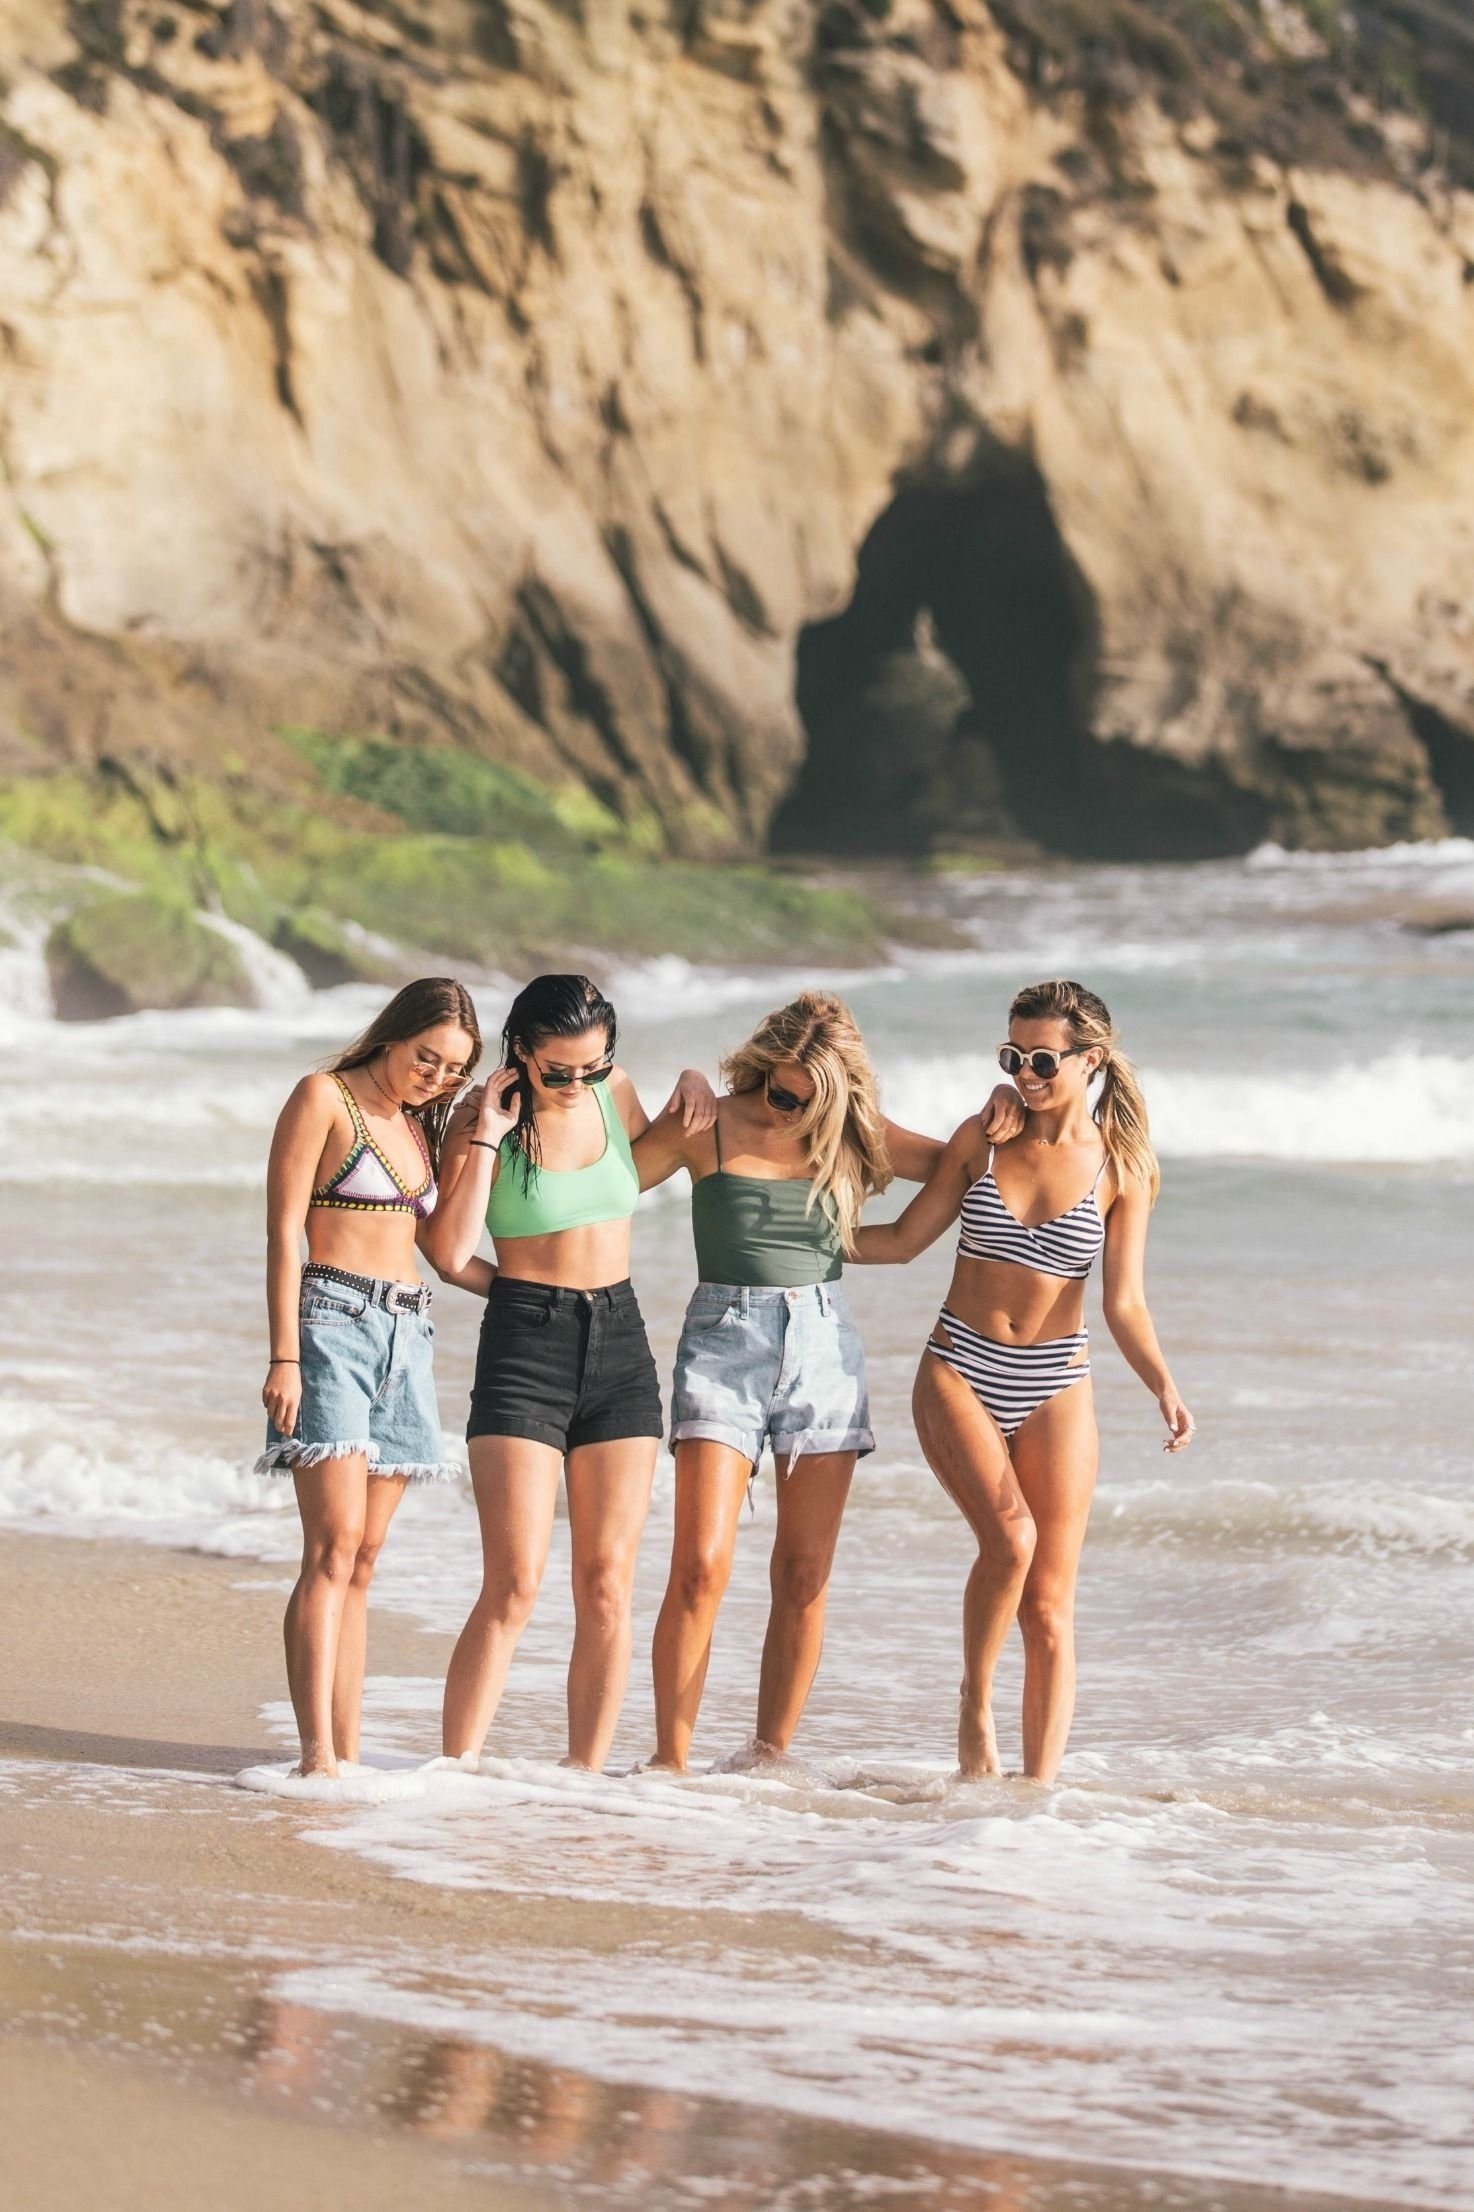 10 Stylish Cheap Spring Break Ideas For College Students 13 ways to have a cheap spring break 2020